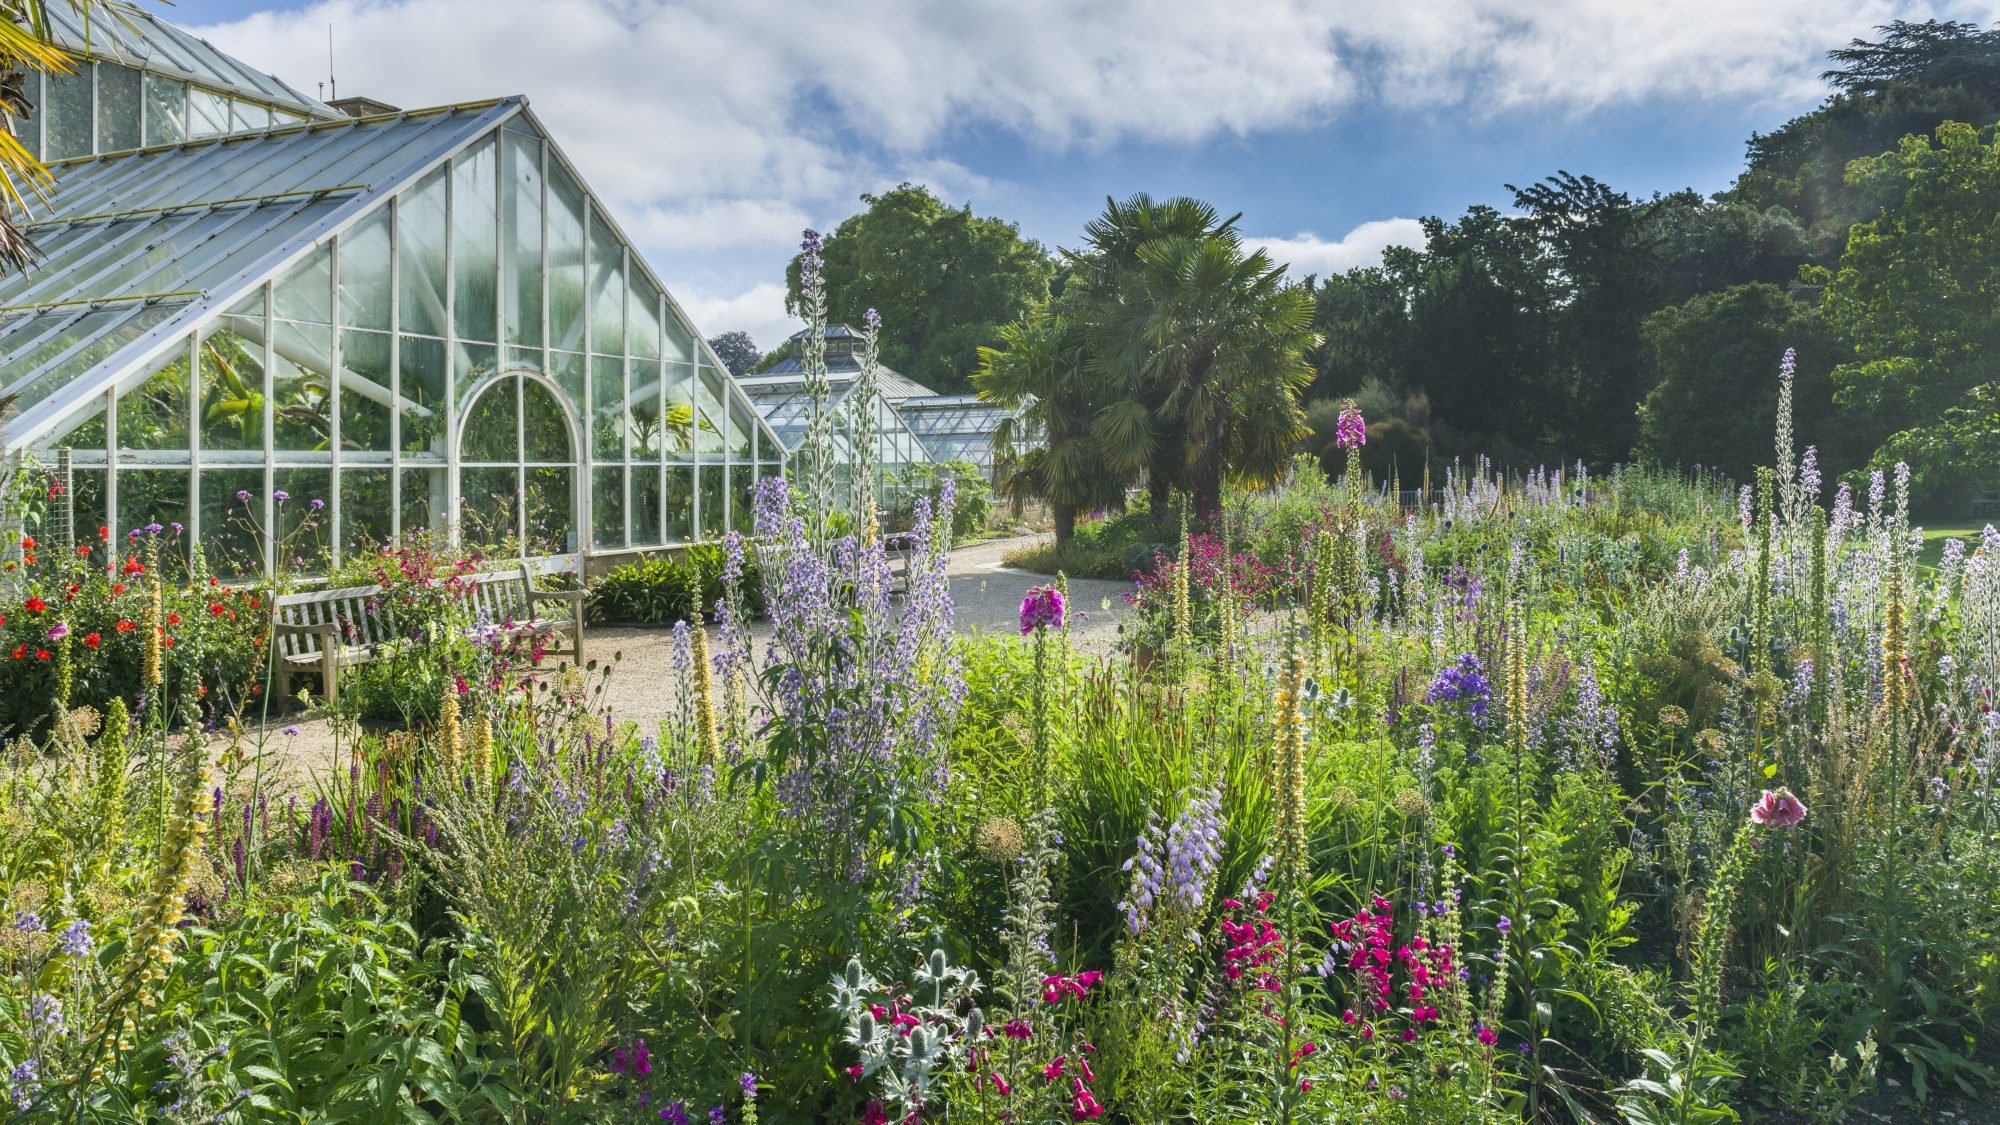 The Bee Borders in the hight of summer, overlooking the Glasshouse.